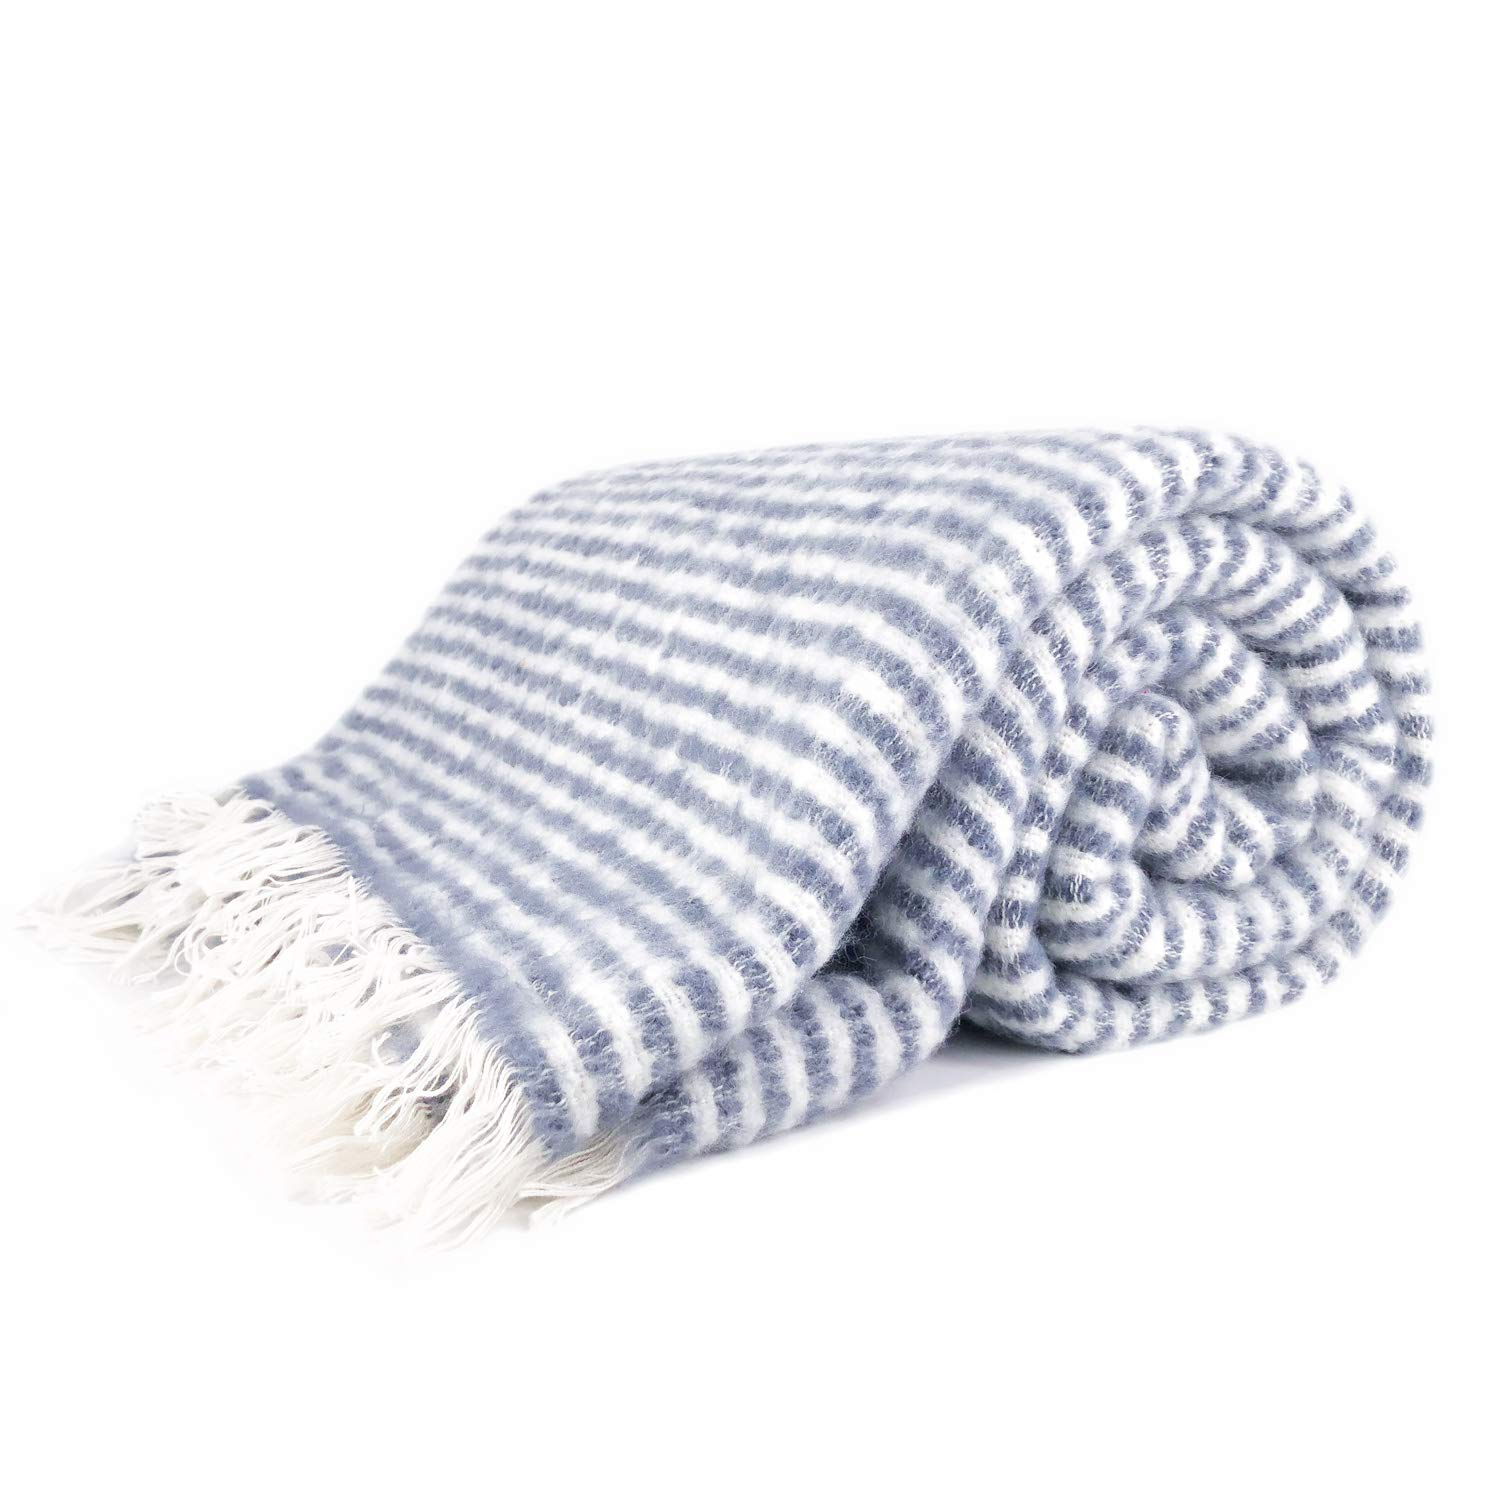 Super Soft Cozy Ticking Striped Brushed Weave Fluffy Throw Blanket for All-Season, Home Decor Stripe Blankets with Tassels for Bed Sofa Couch Chair, 50 x 60 Inches, Blue, White